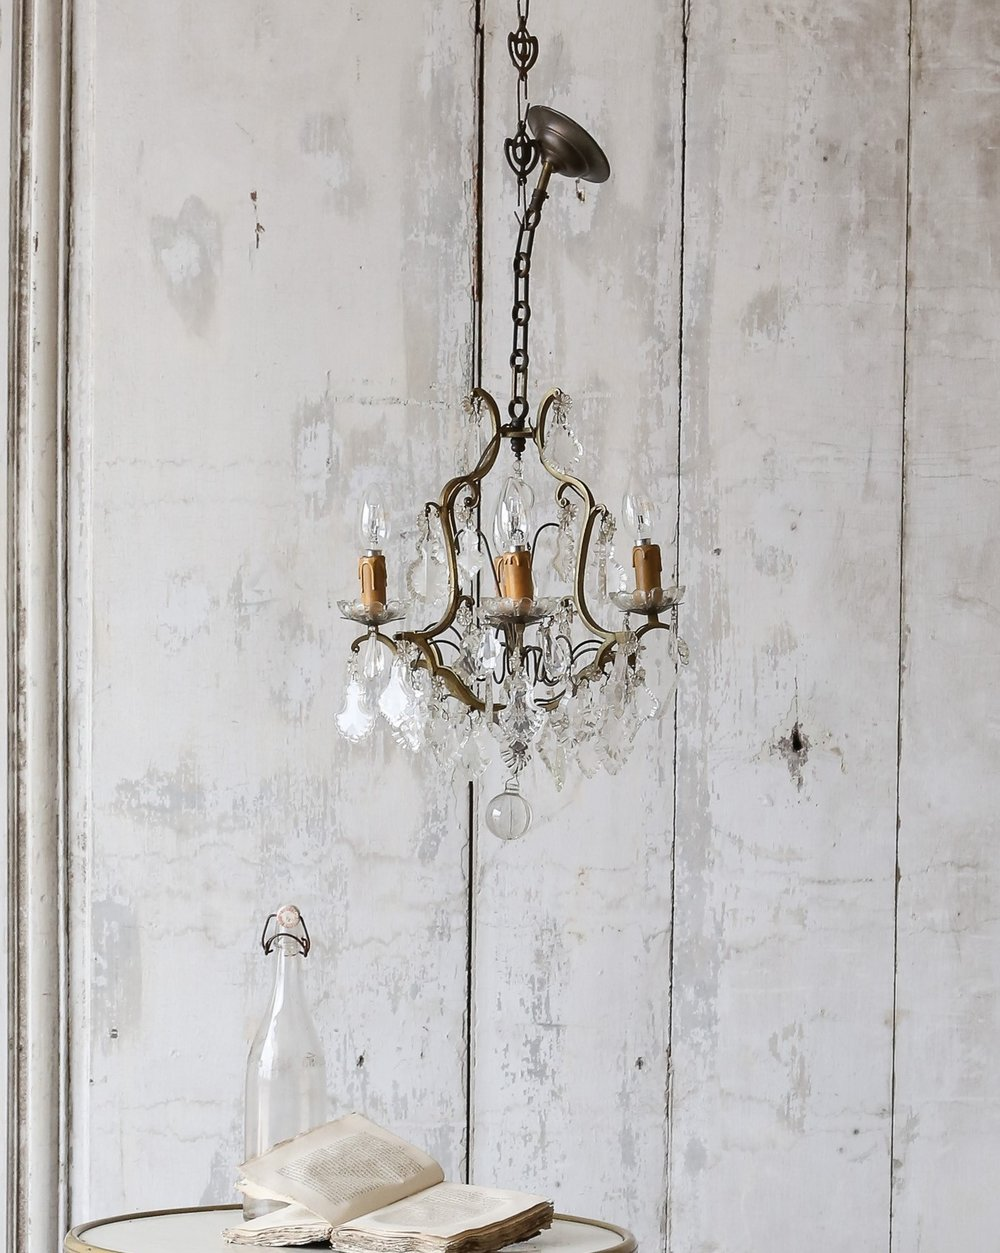 Antique French Chandelier c.1900.jpg